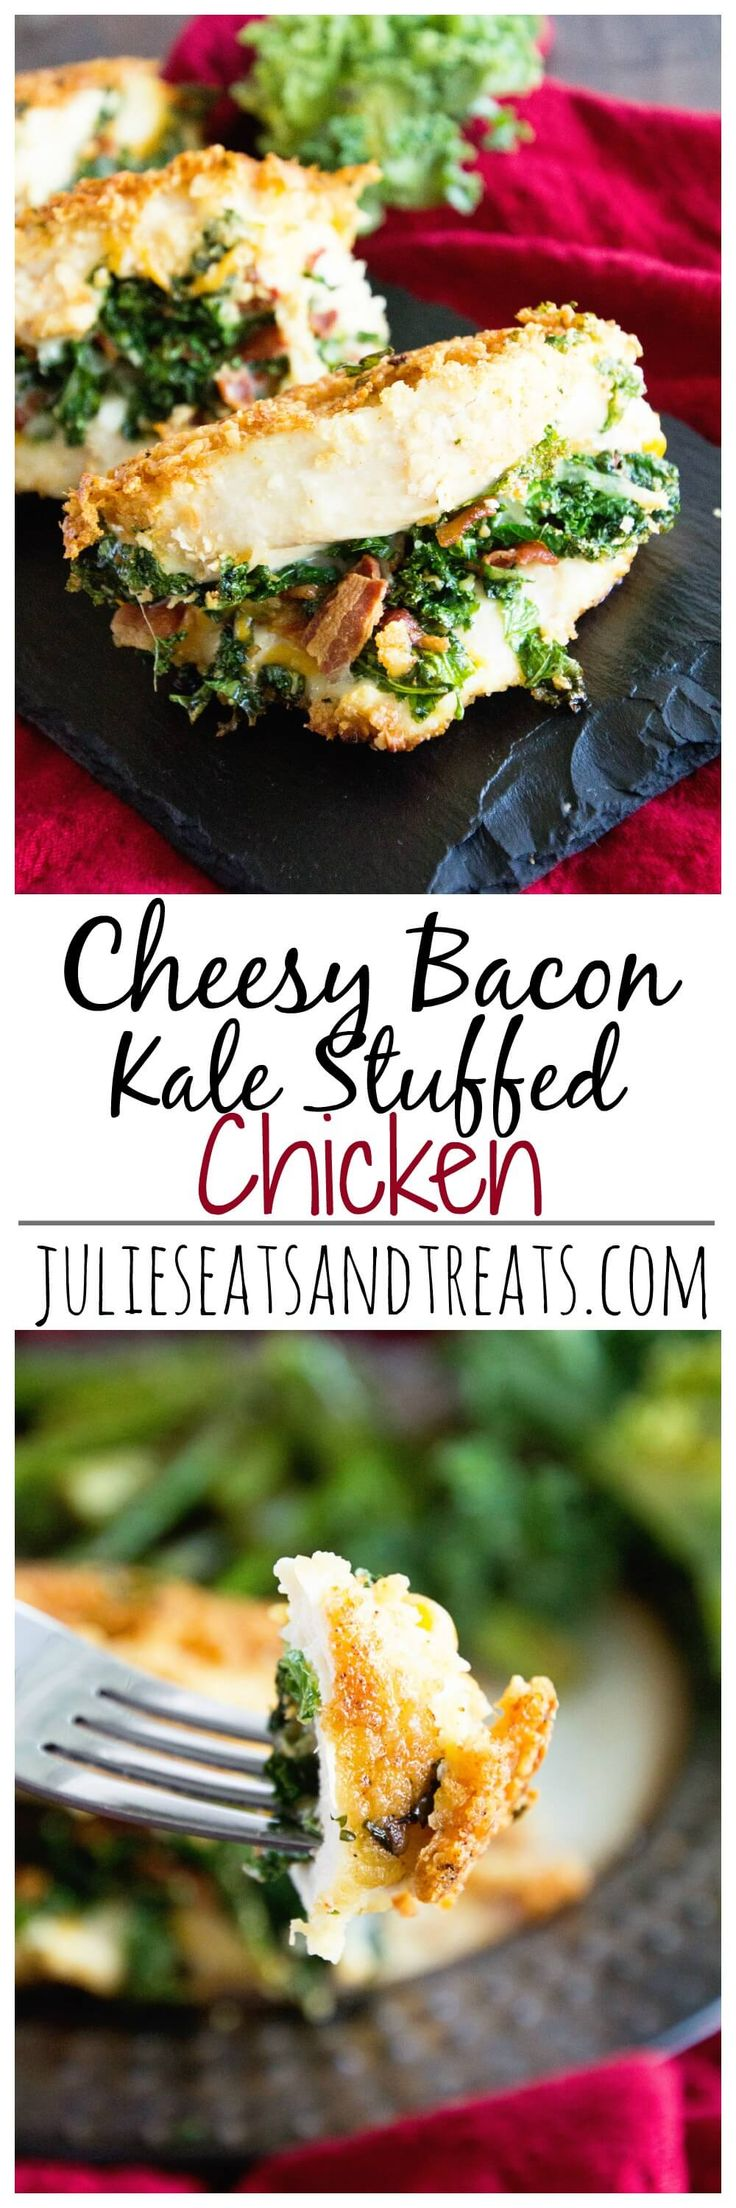 Cheesy Bacon Kale Stuffed Chicken ~ Delicious, Tender Chicken Breasts Stuffed with Cheese, Bacon and Kale! Quick, Easy and Delicious Recipe! ~ http://www.julieseatsandtreats.com